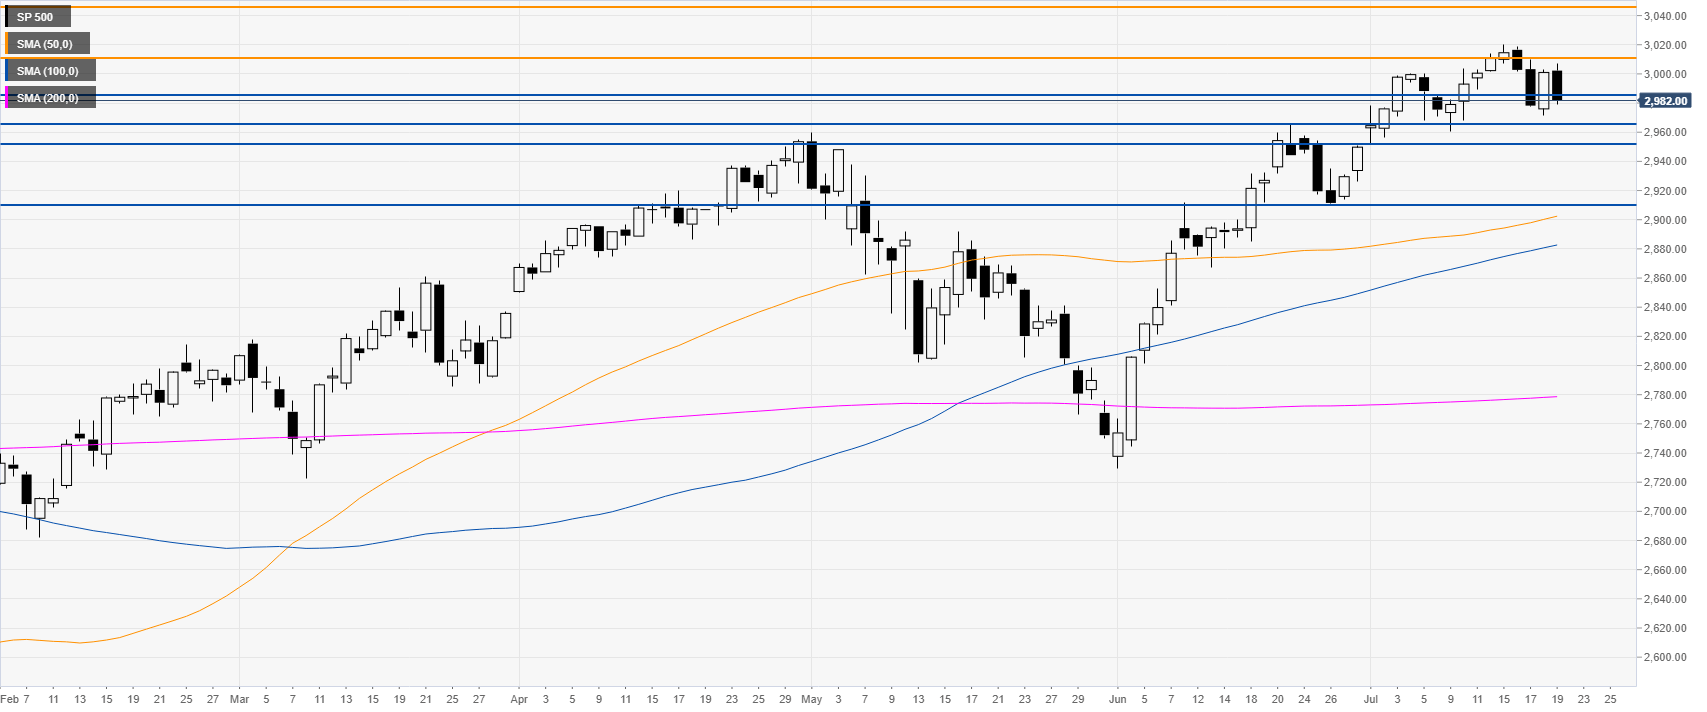 sp500 daily chart